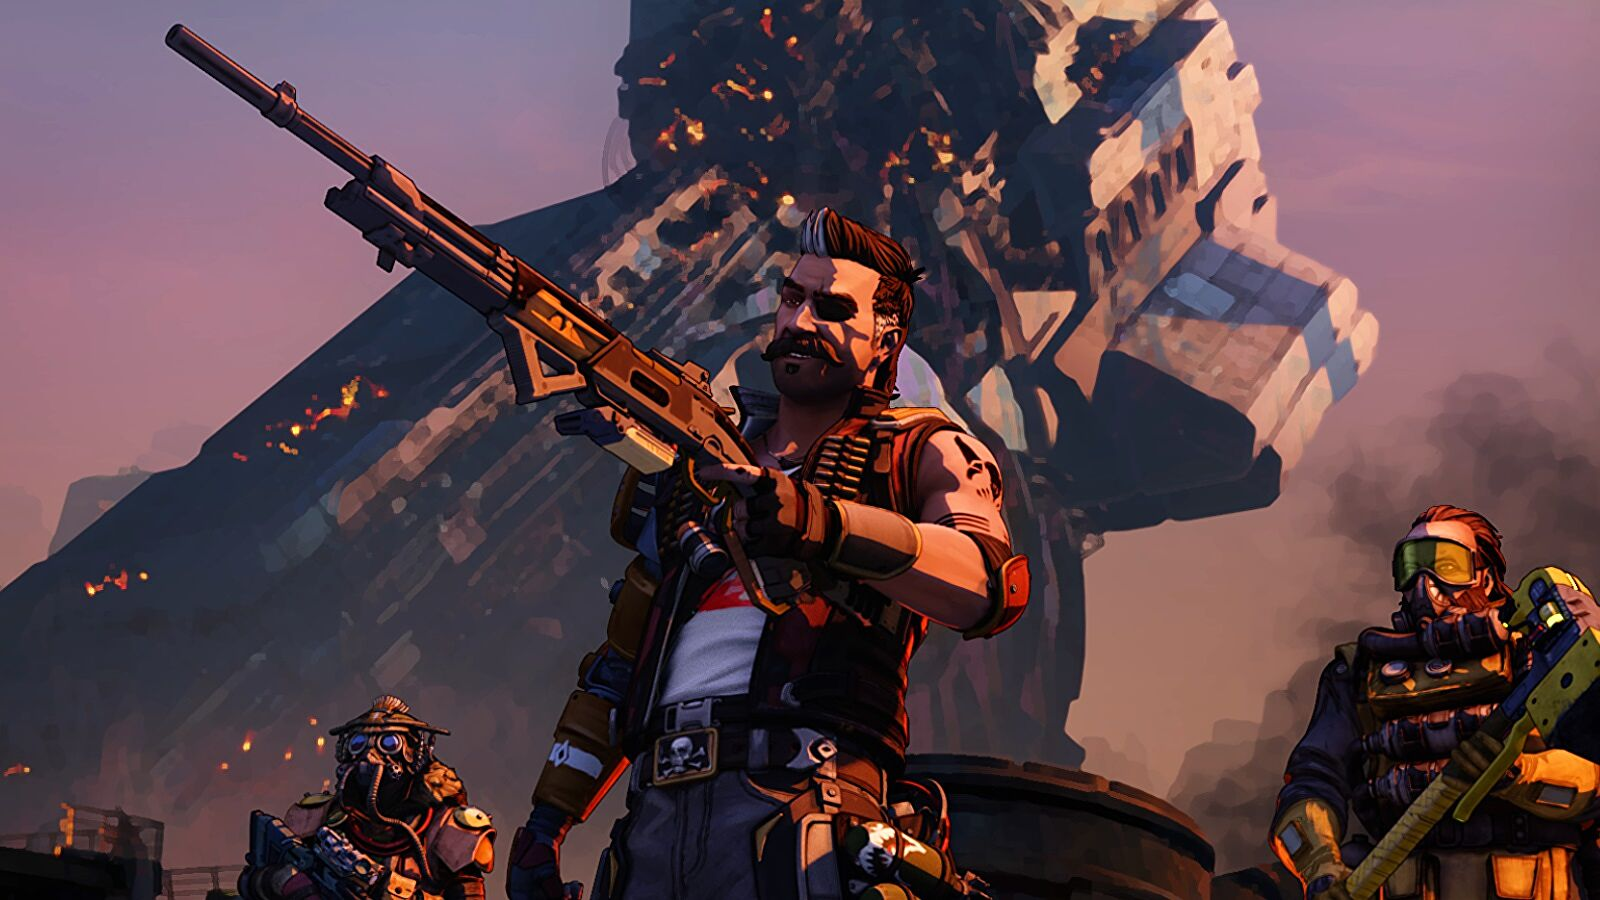 Apex Legends' future could see live game-changing events